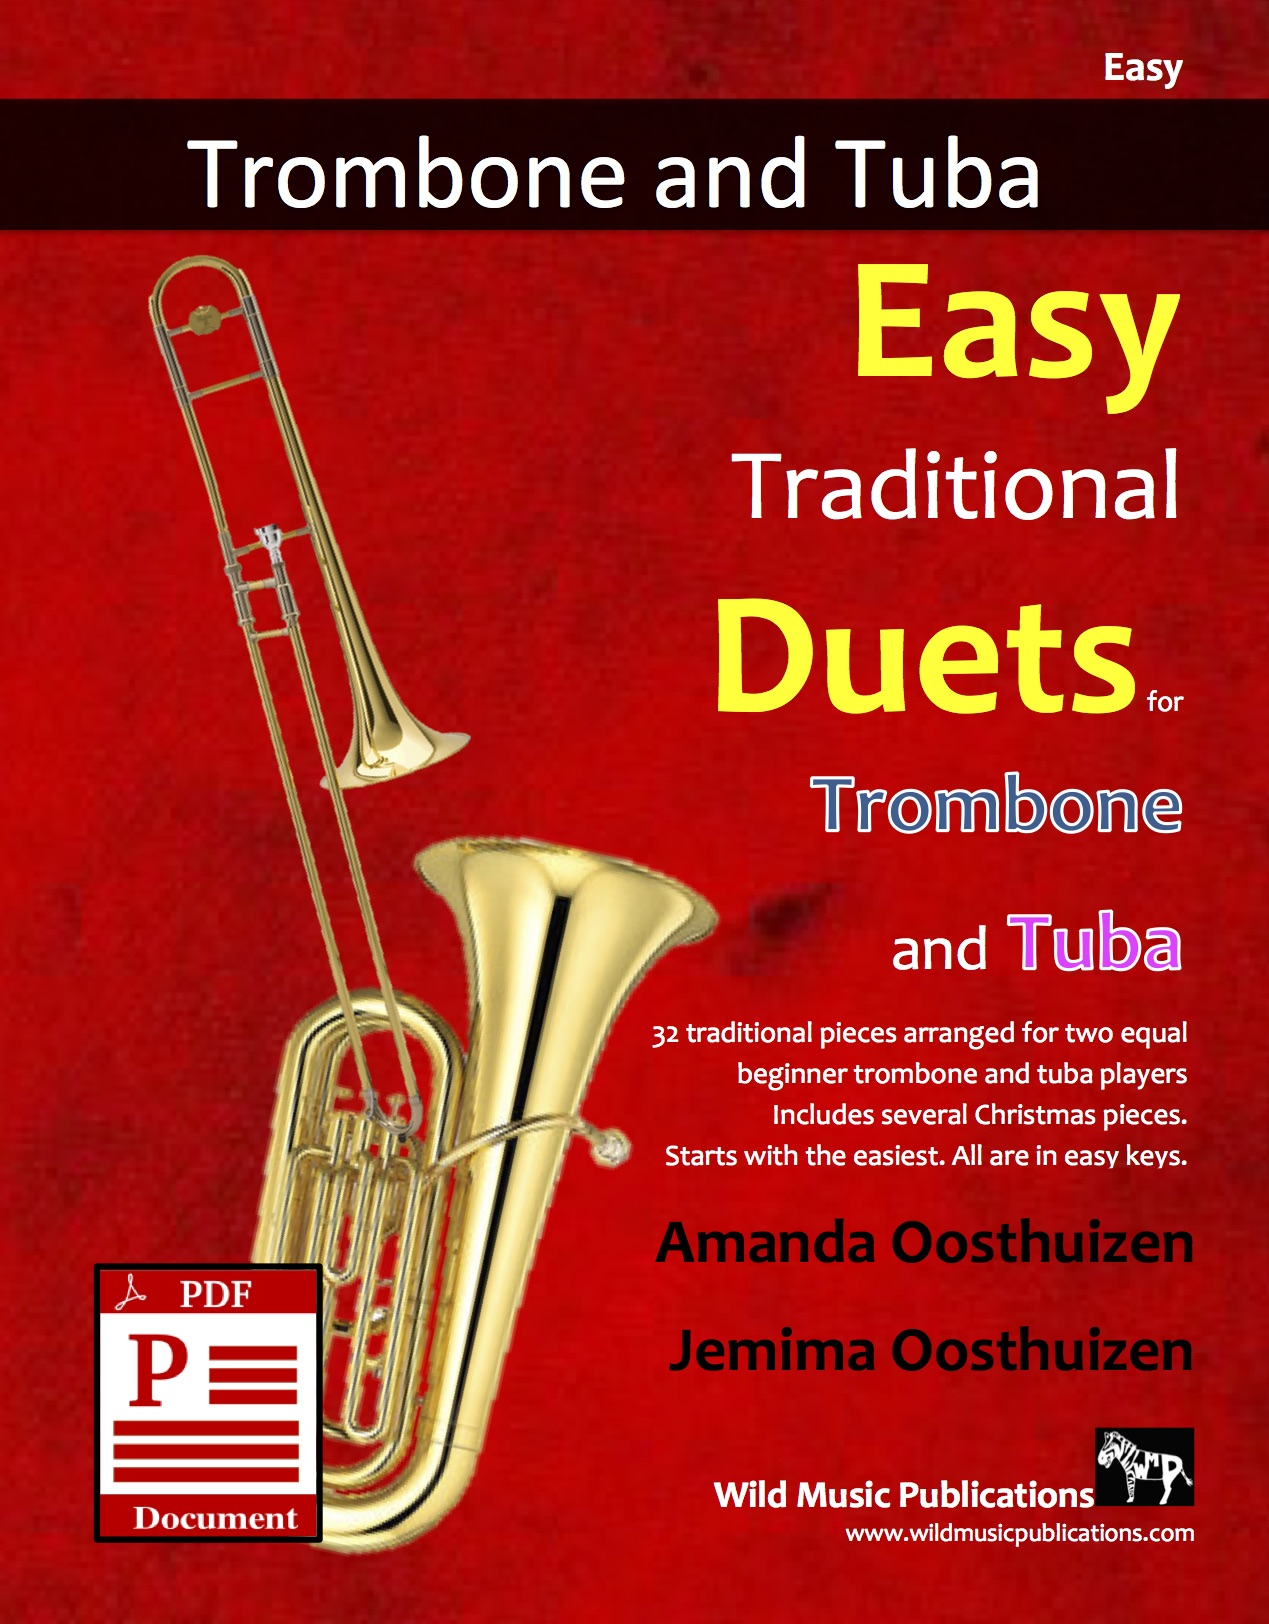 Easy Traditional Duets for Trombone and Tuba Download